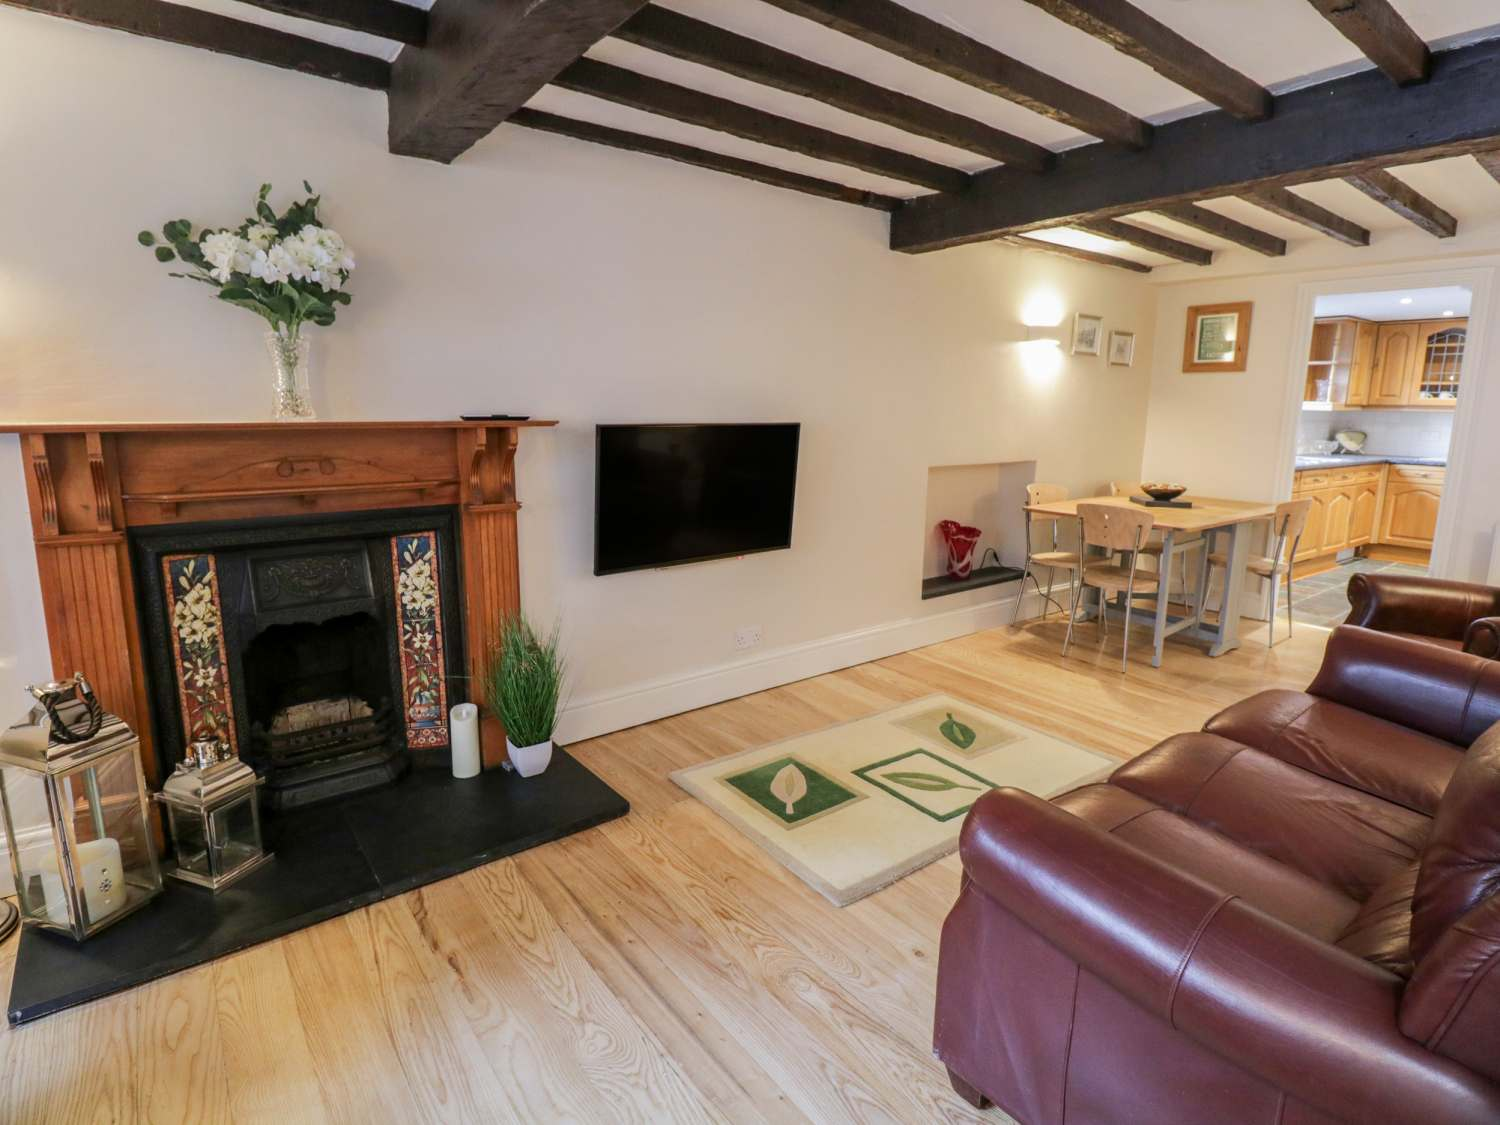 1 Queens Square - Lake District - 993457 - photo 1